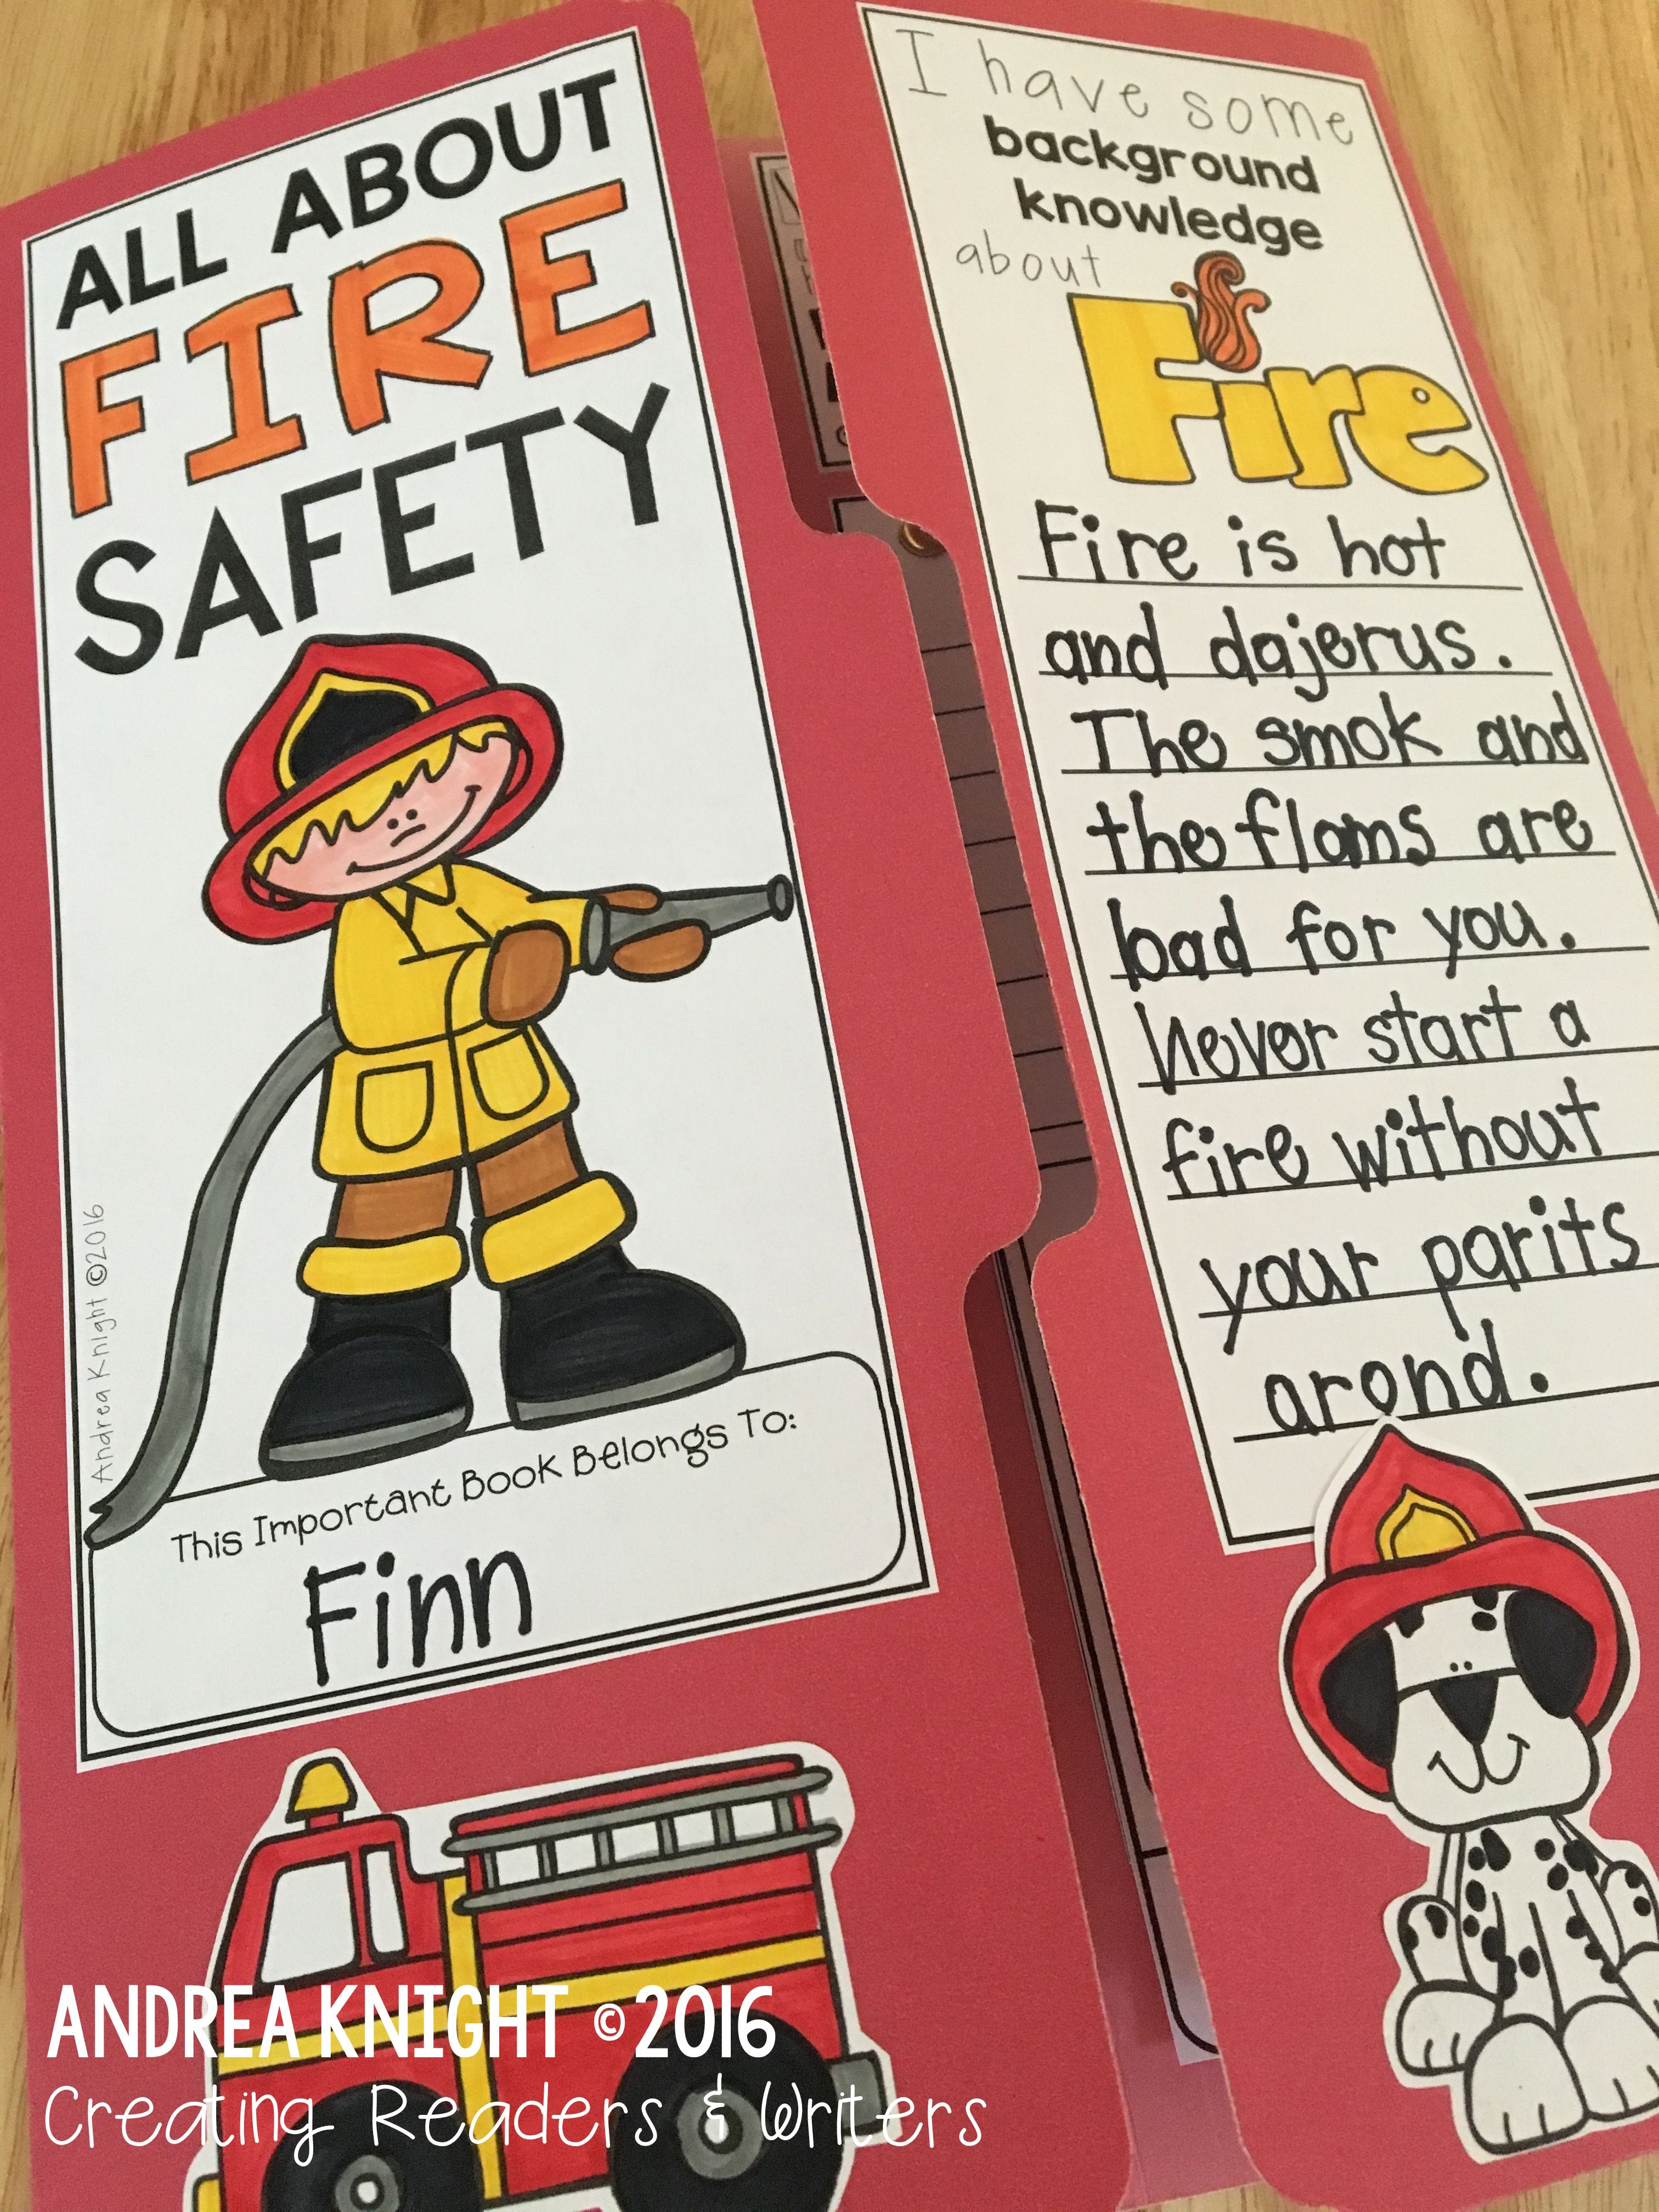 Kitchen safety poster project - Free Fire Safety Posters With A Lego Theme Fire Safety Safety And Books